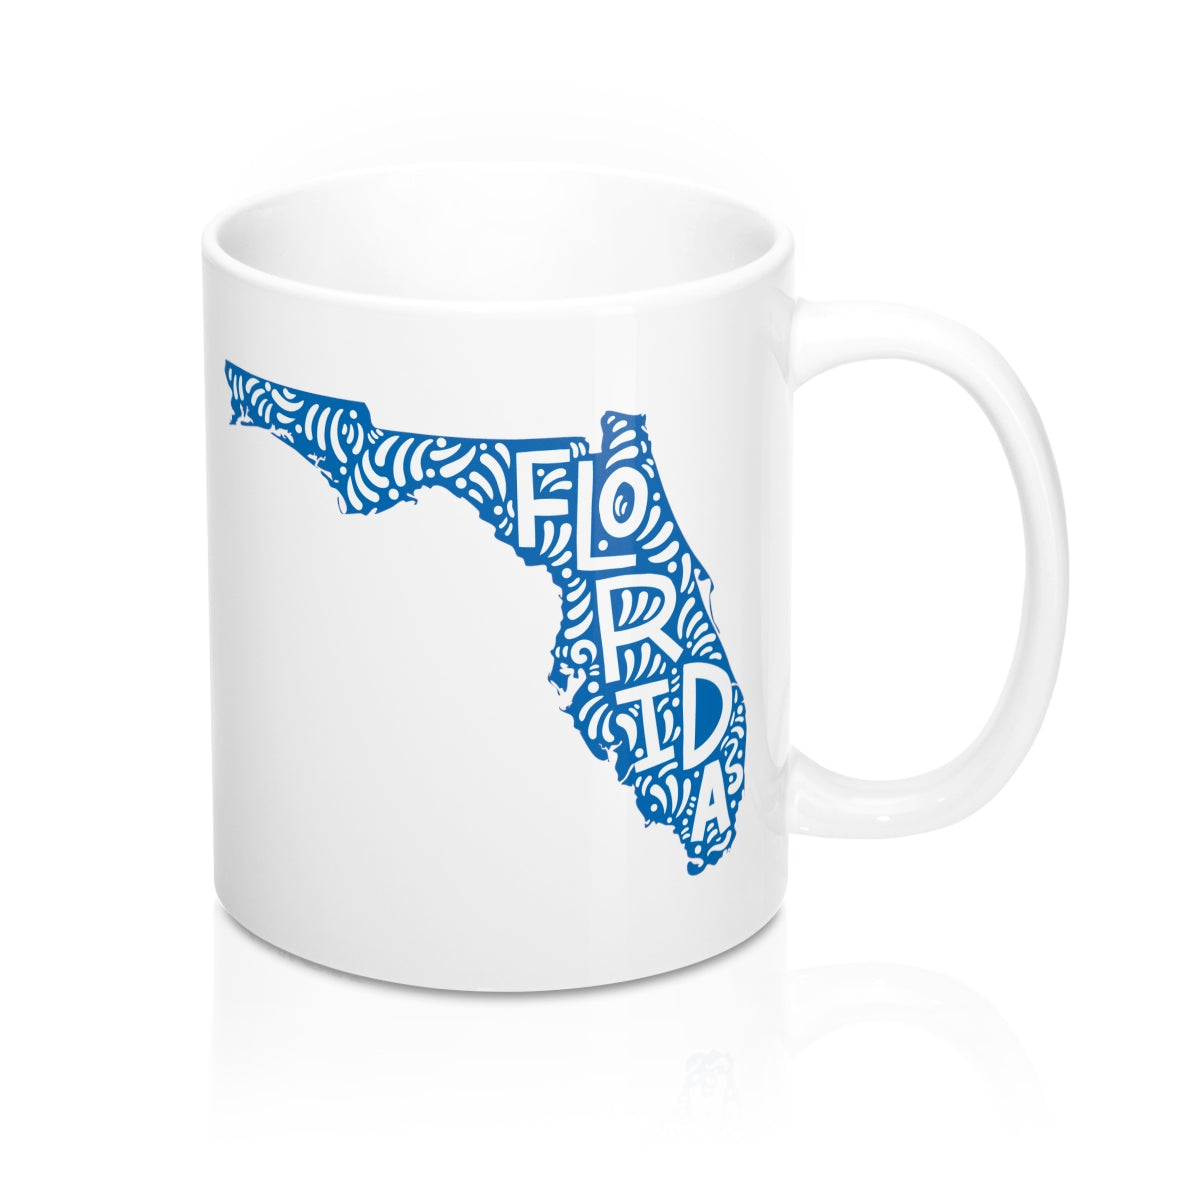 Florida Stickers. CO State Outline, Florida State Shape, City, Town Stickers, tshirt, t-shirt, hoodie